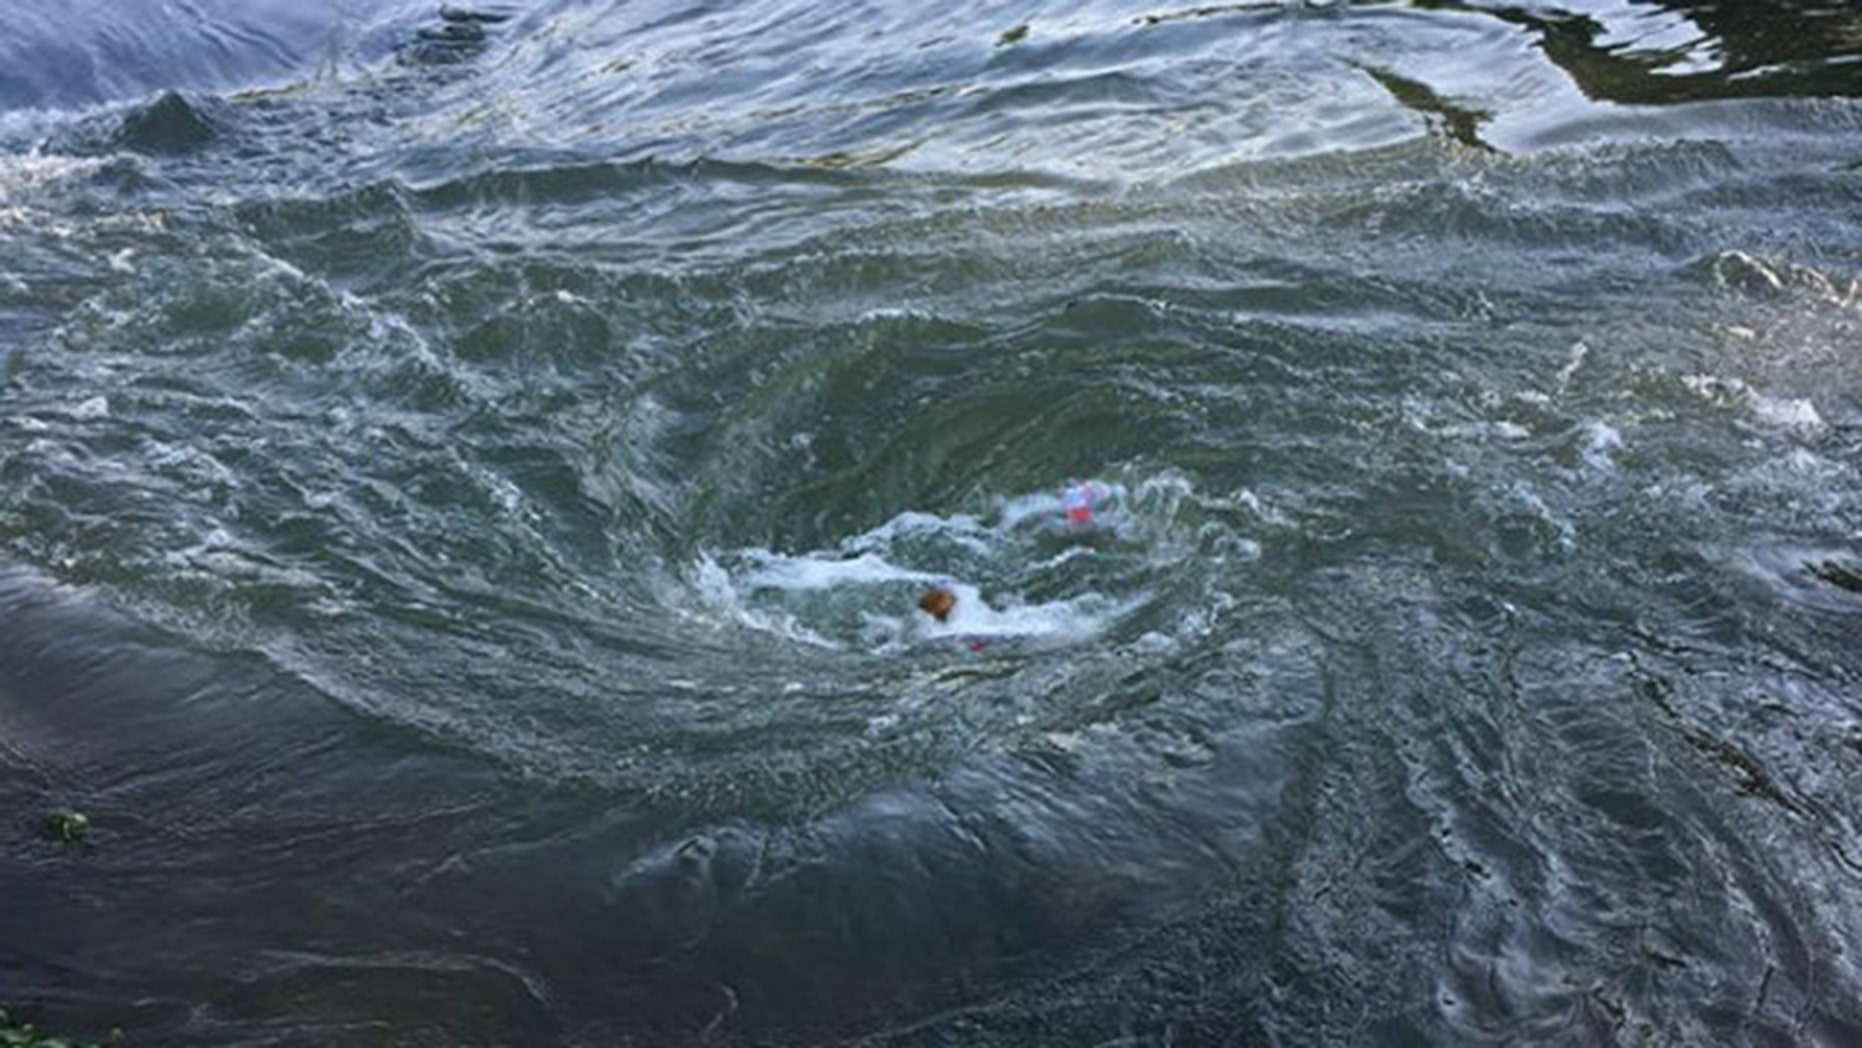 At least one boater died Saturday after a sinkhole opened on the bed of Spring River in northern Arkansas, creating a whirlpool, according to the Arkansas Game and Fish Commission. (Arkansas Game and Fish Commission)